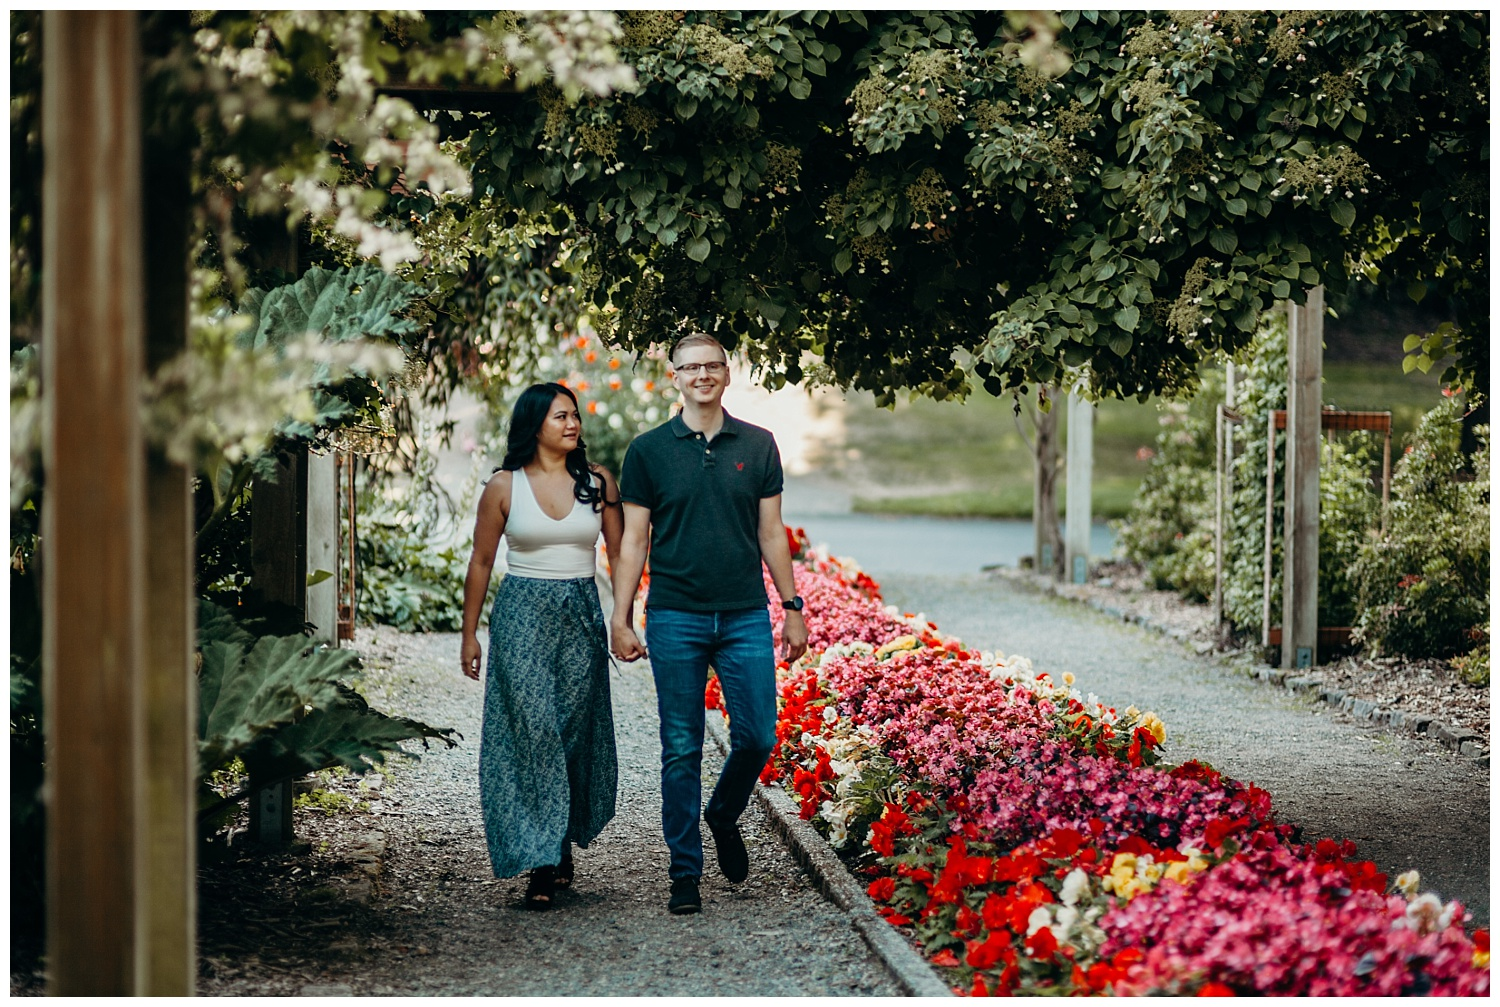 Jaynah and Kevin Point Defiance Rose Garden Owen Beach Tacoma Washington Engagement Session (1).jpg